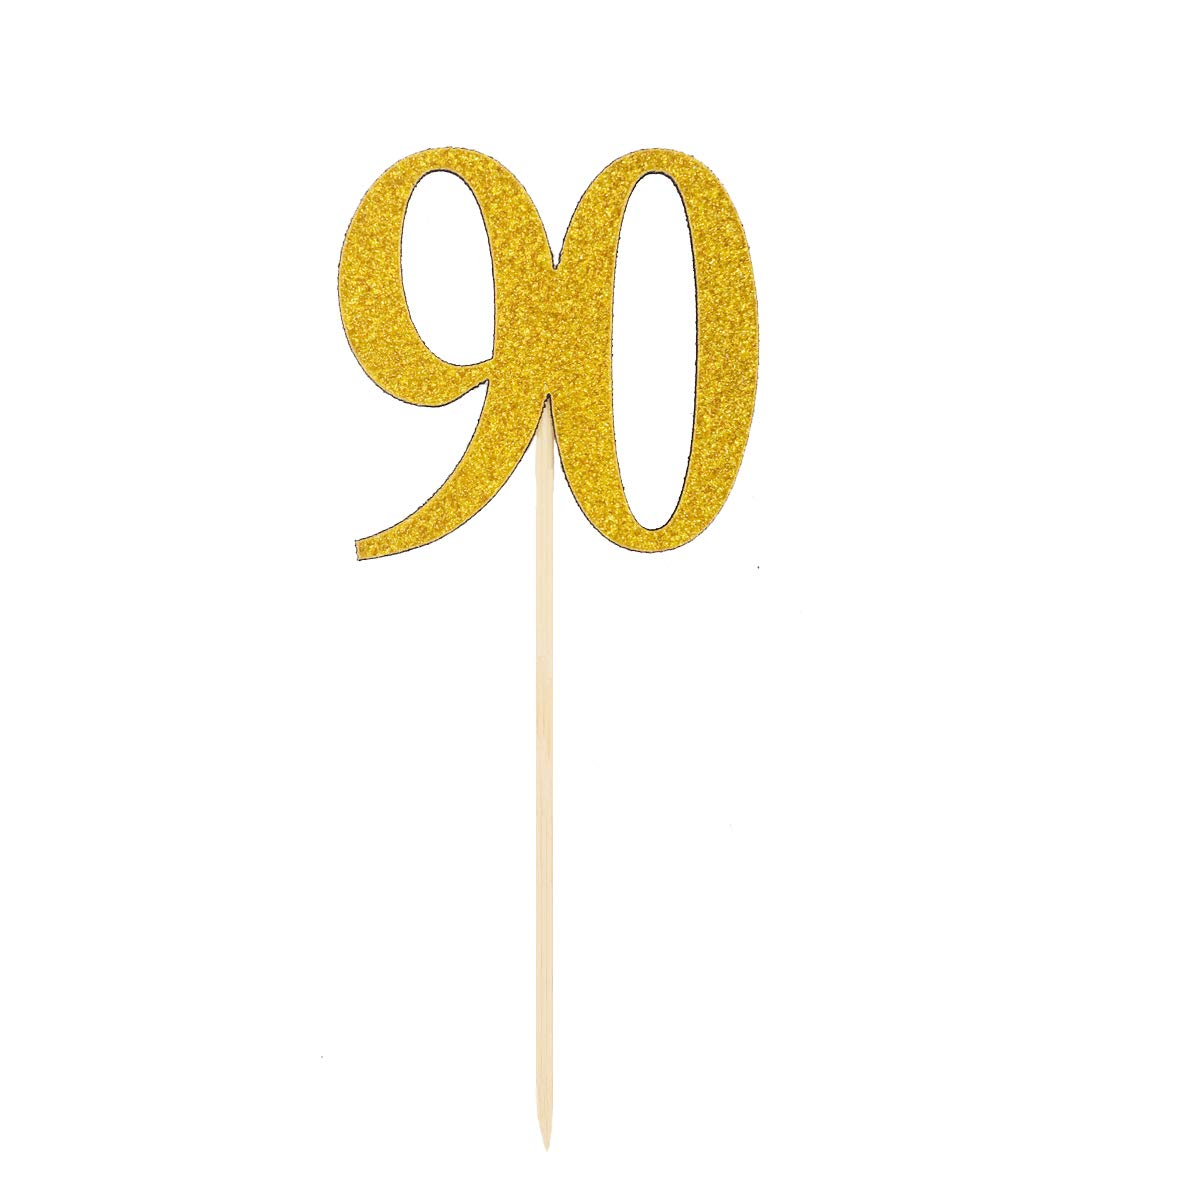 Party Supplies Art & Craft Supplies JANOU Number 90 Gold Glitter Cake Topper Cupcake Picks Cake Decoration 90s Birthday Anniversary Wedding Party Suppliers Pack 12pcs